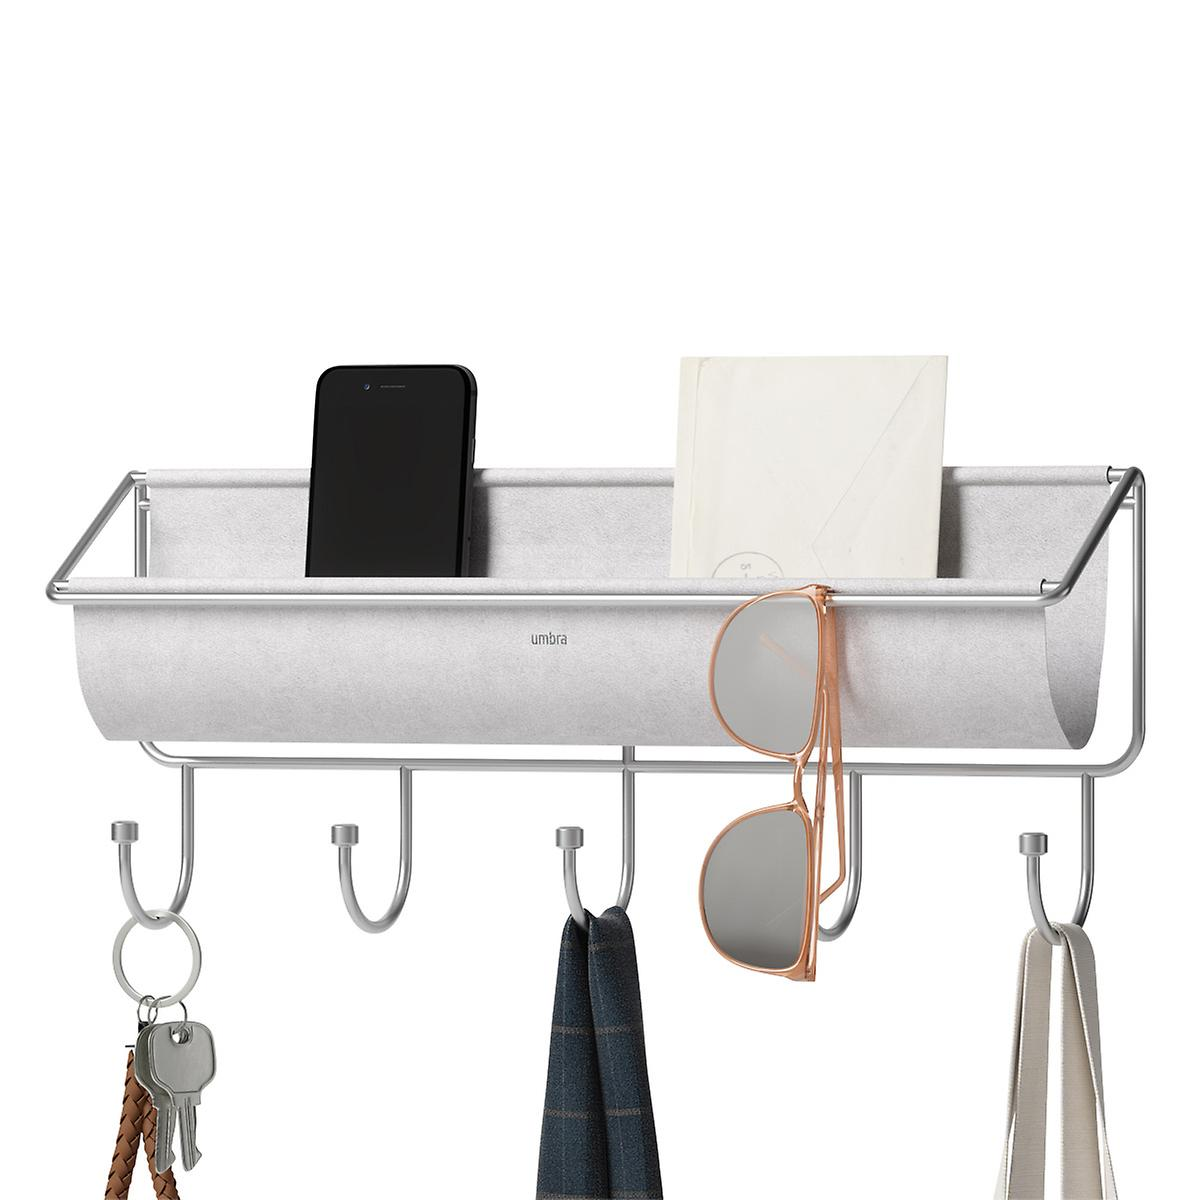 Umbra Hammock Hook Rack